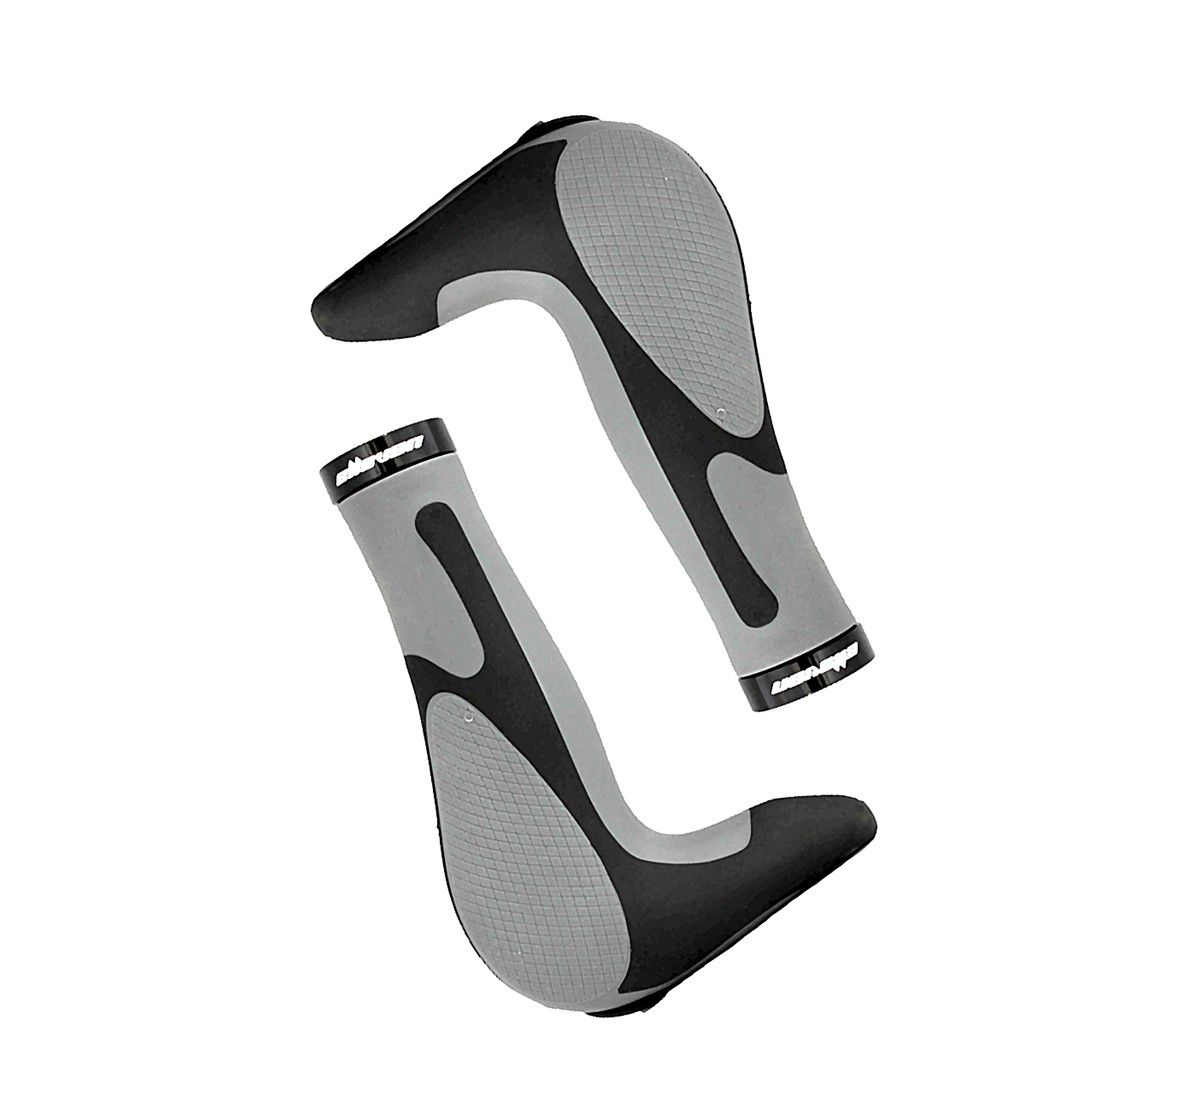 Manopla Bar End Integrado Ergonômico Confort Gel